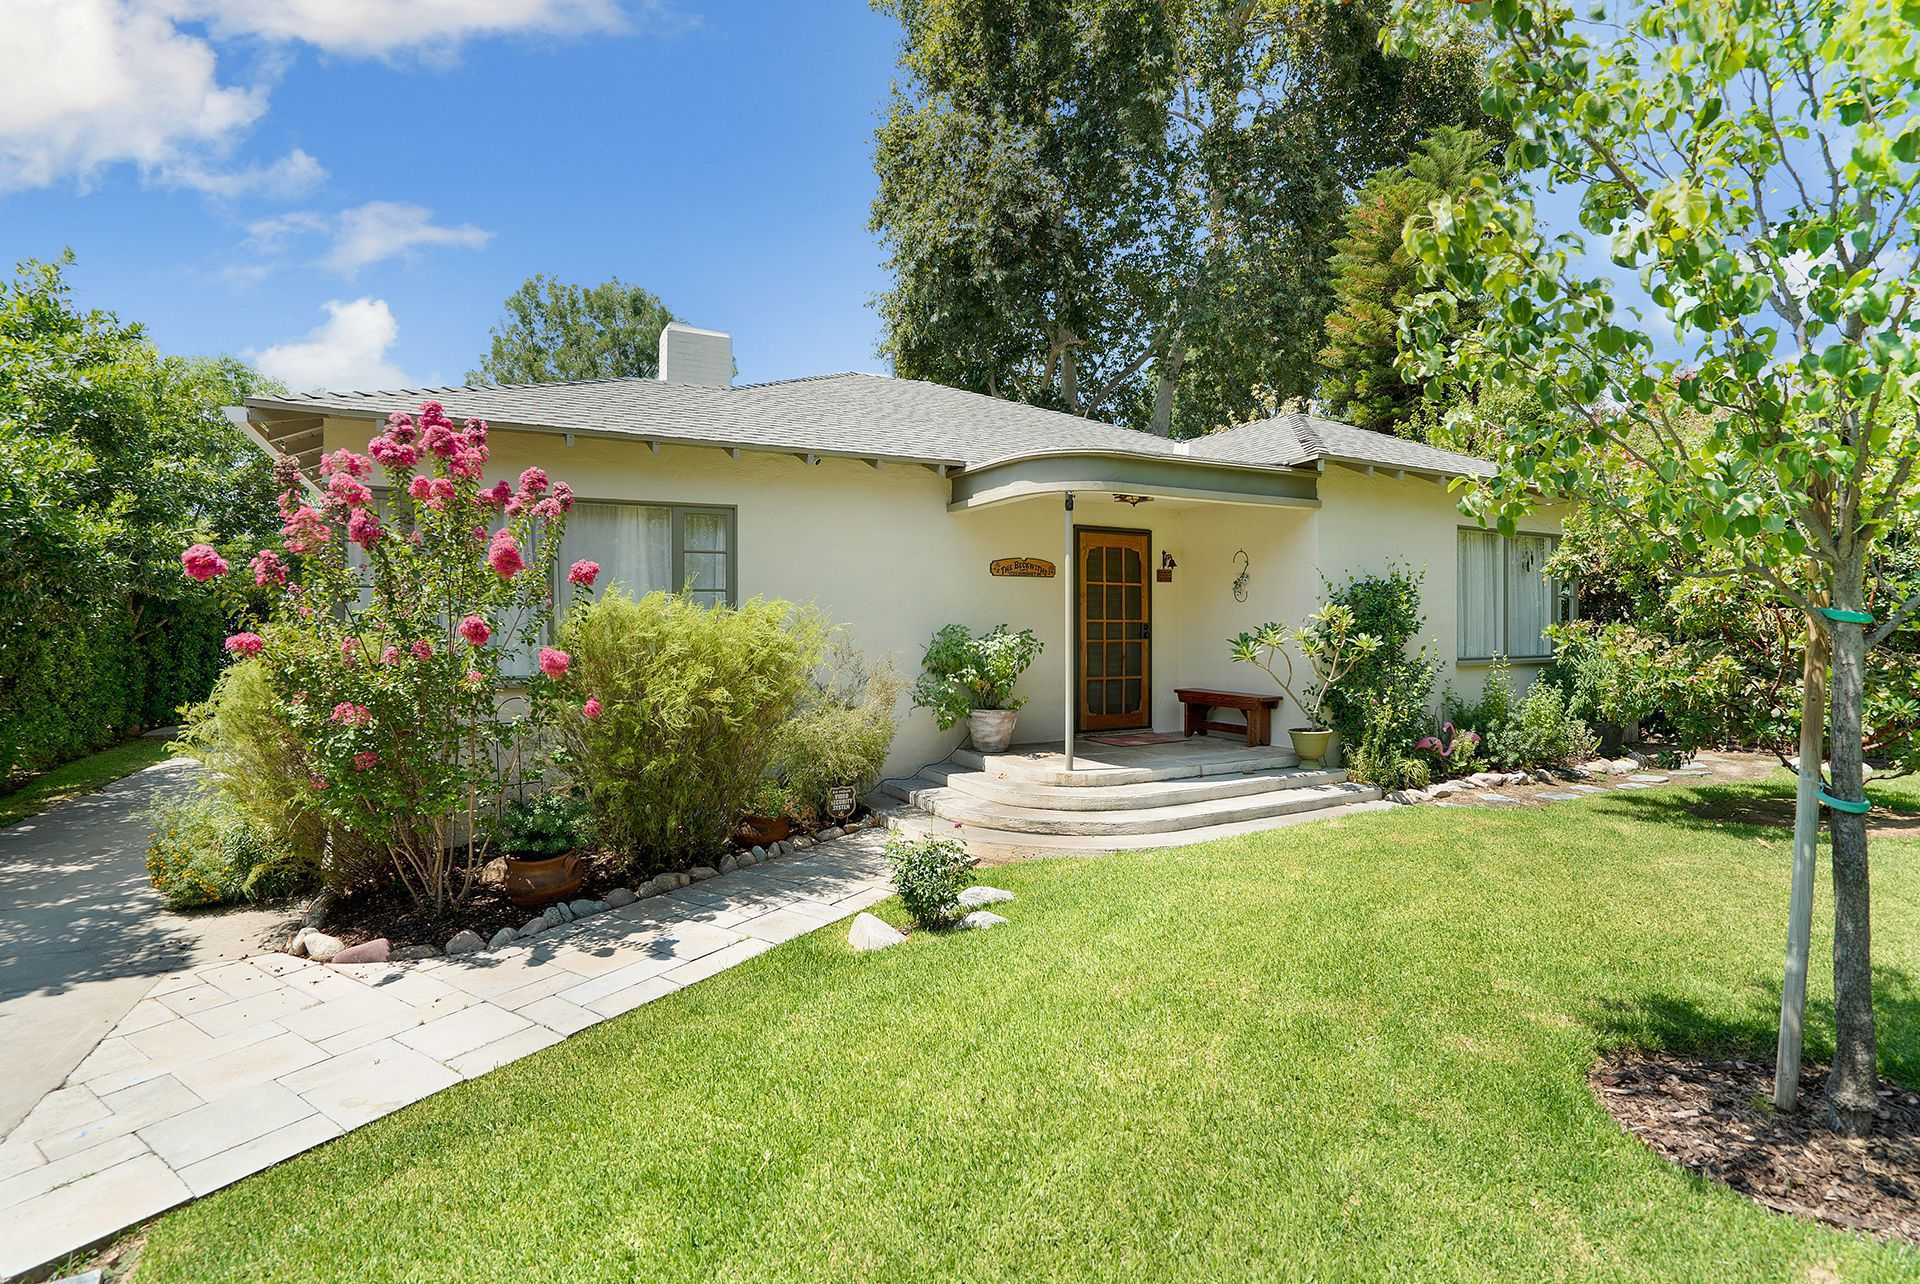 4735 Somerset Dr, Riverside CA 92507 listed by THE SISTER TEAM